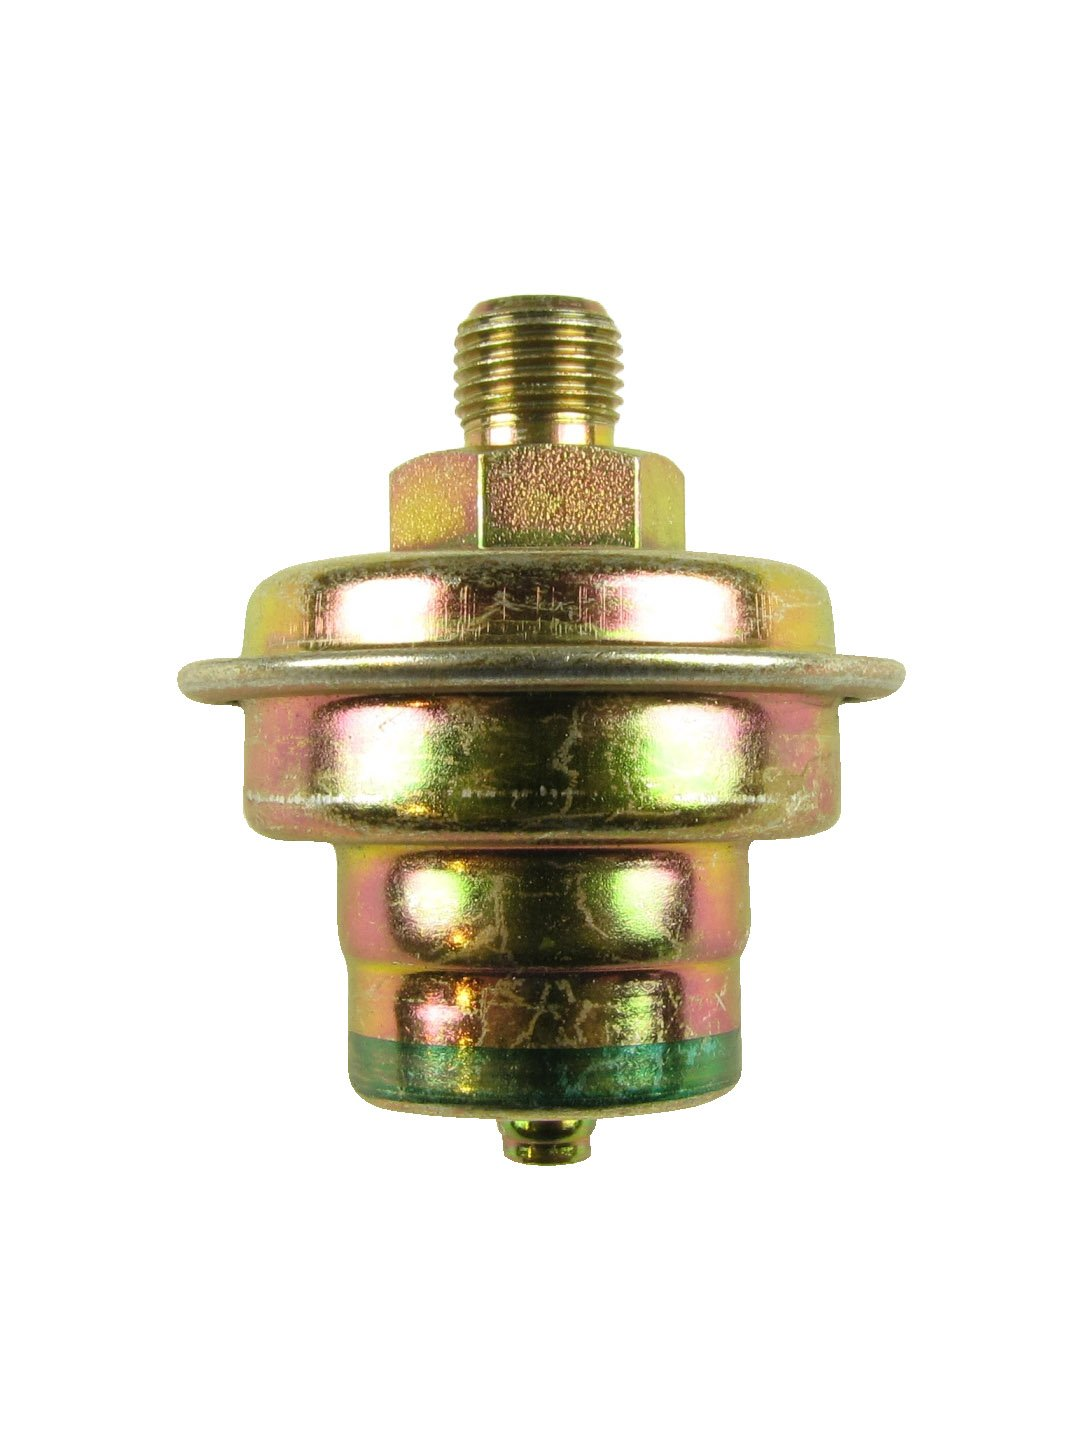 Green Stripe Modulator for Ford FMX Transmission 1968-1981 Alto Products Corp